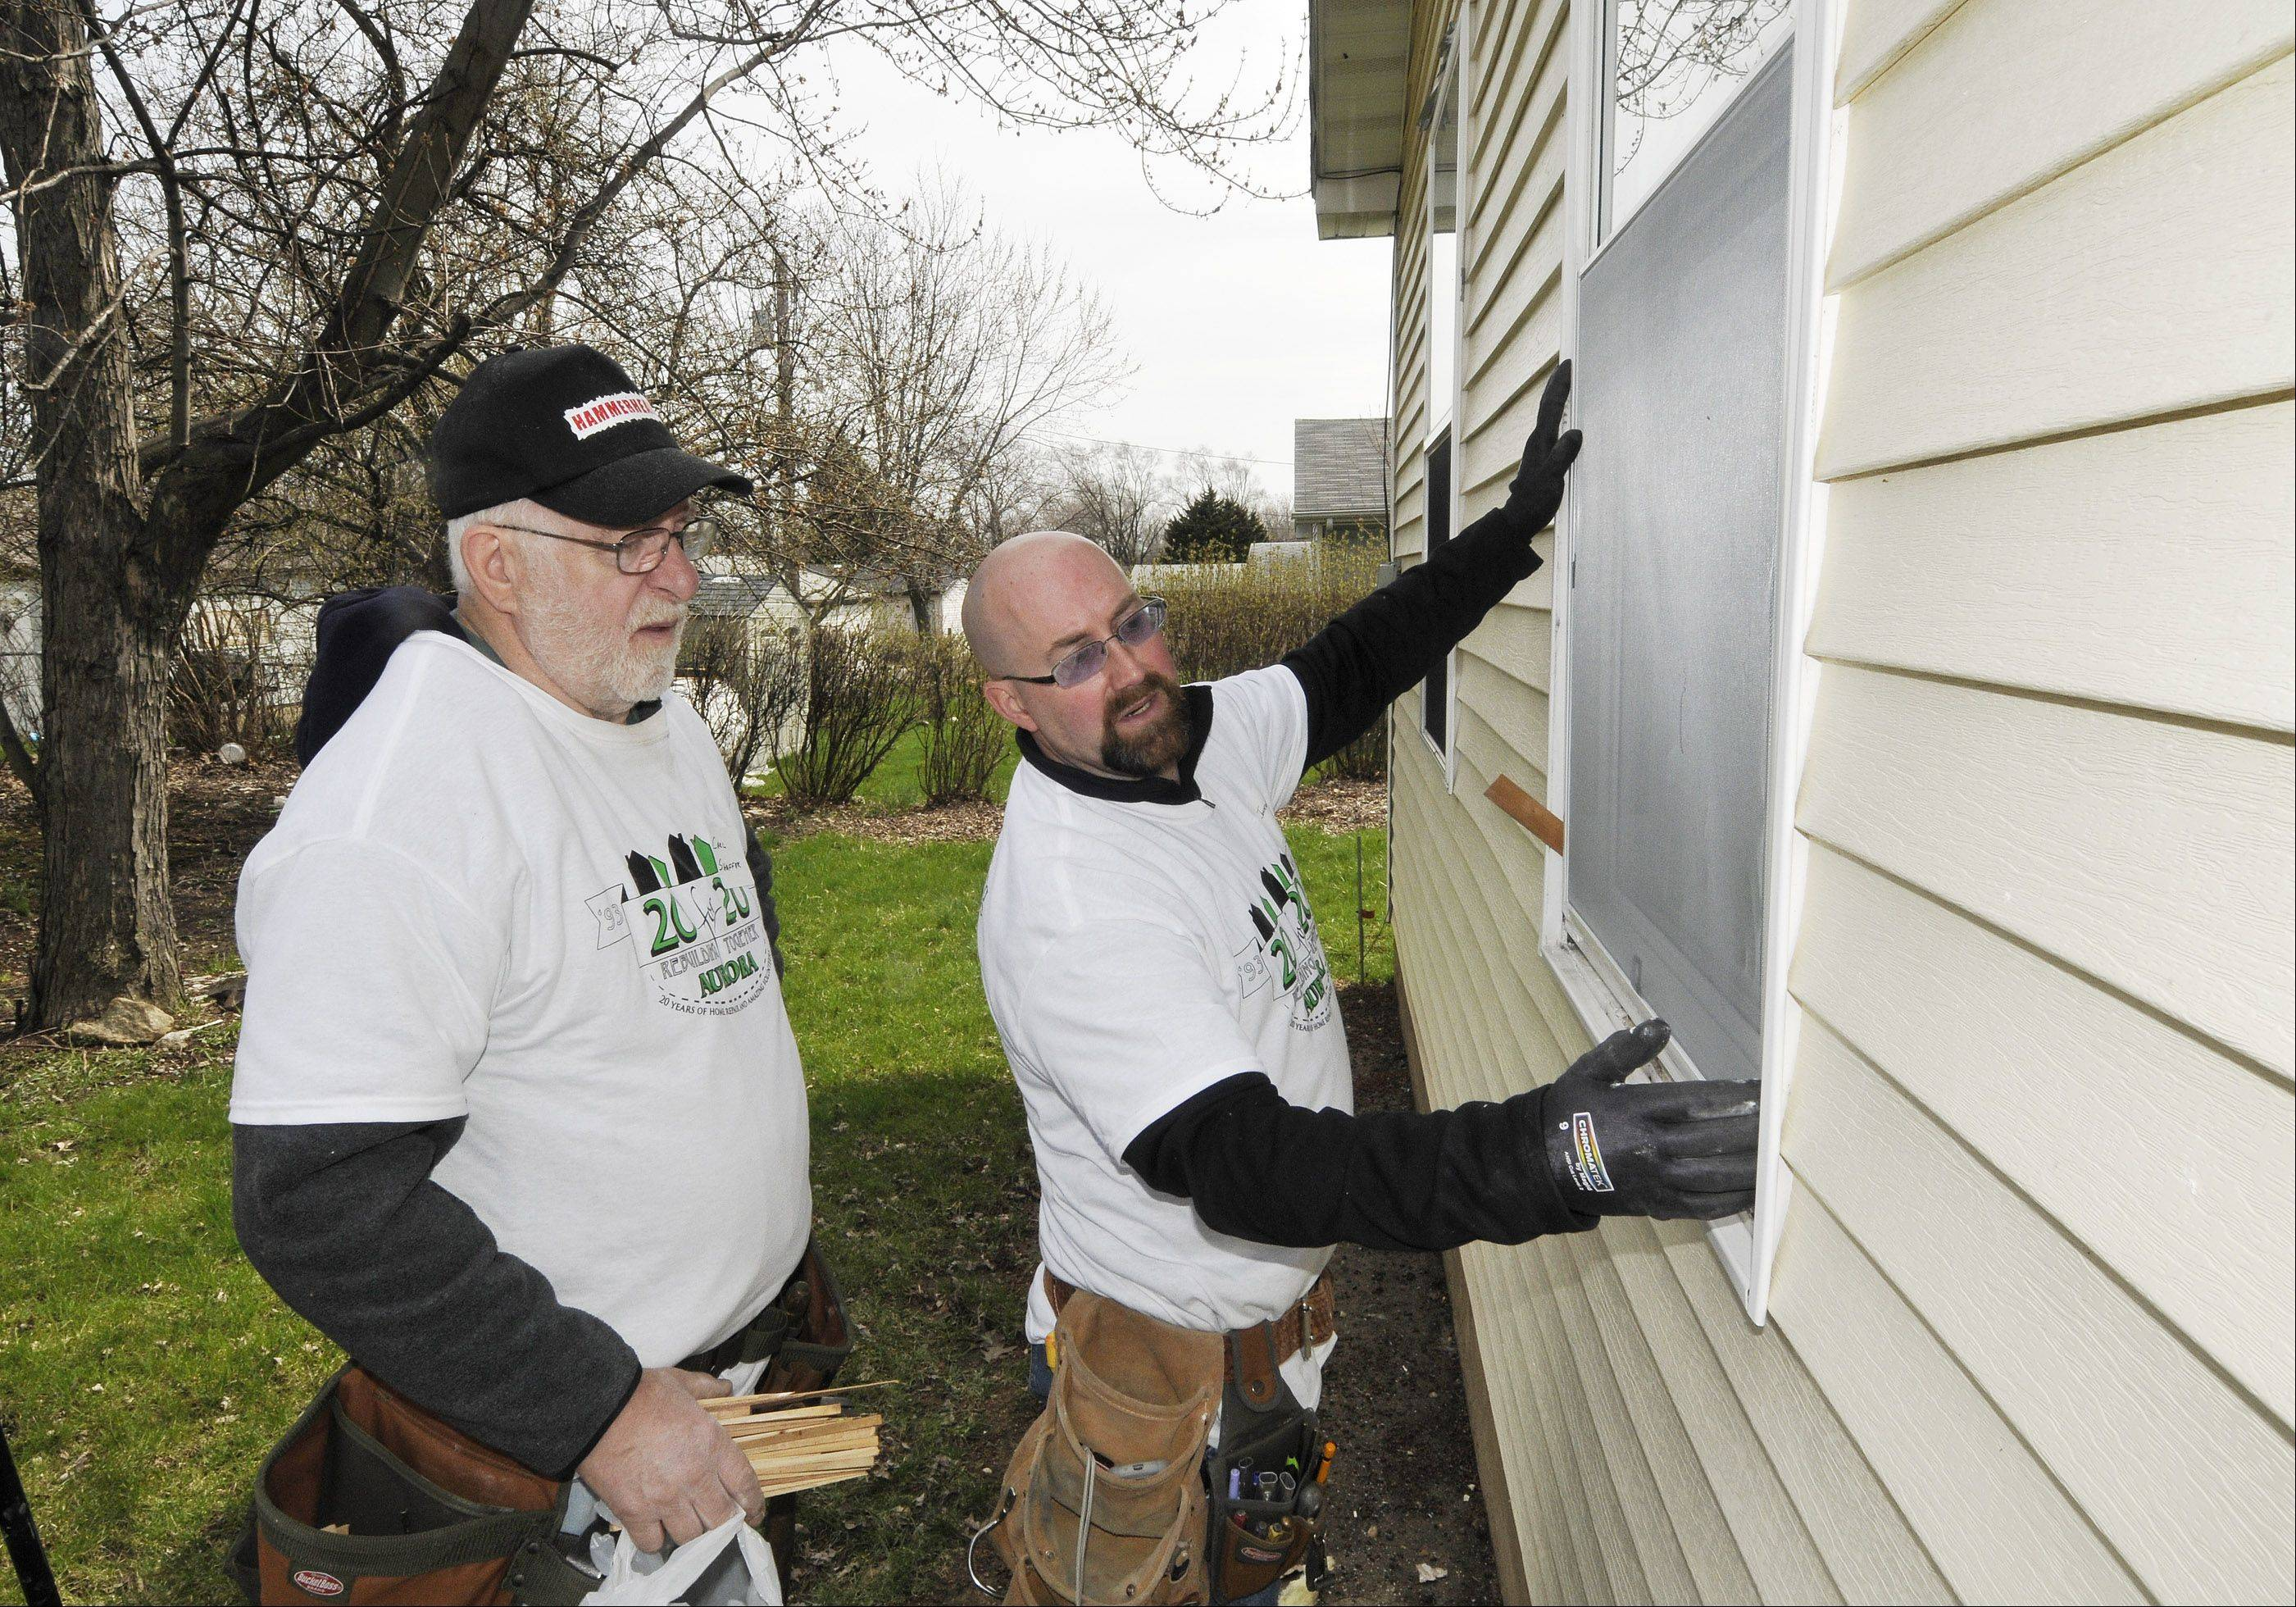 Rebuilding Together Aurora volunteers Carl Shaffer and Keith Johnson from Community Christian Church in Naperville install a new window Friday on a home in Aurora's Pattersonville neighborhood, replacing an old window pierced by a bullet. More than 800 volunteers are repairing about 20 homes Friday and Saturday during Rebuilding Together Aurora's 20th annual April home repair event.